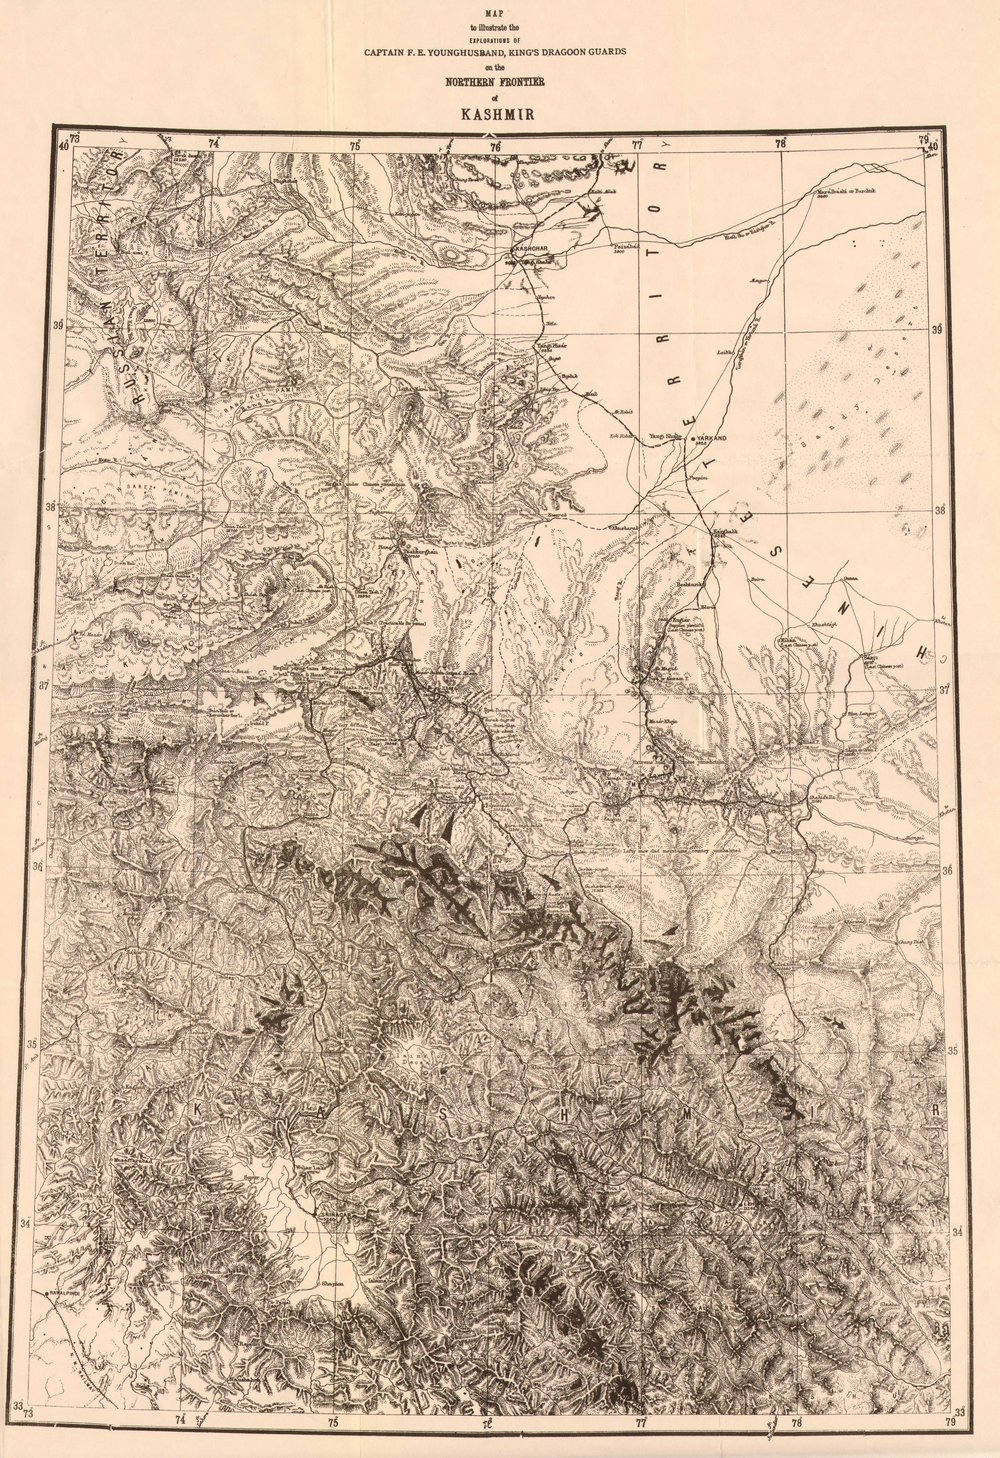 The Northern Frontier of Kashmir by Francis Younghusband 1880